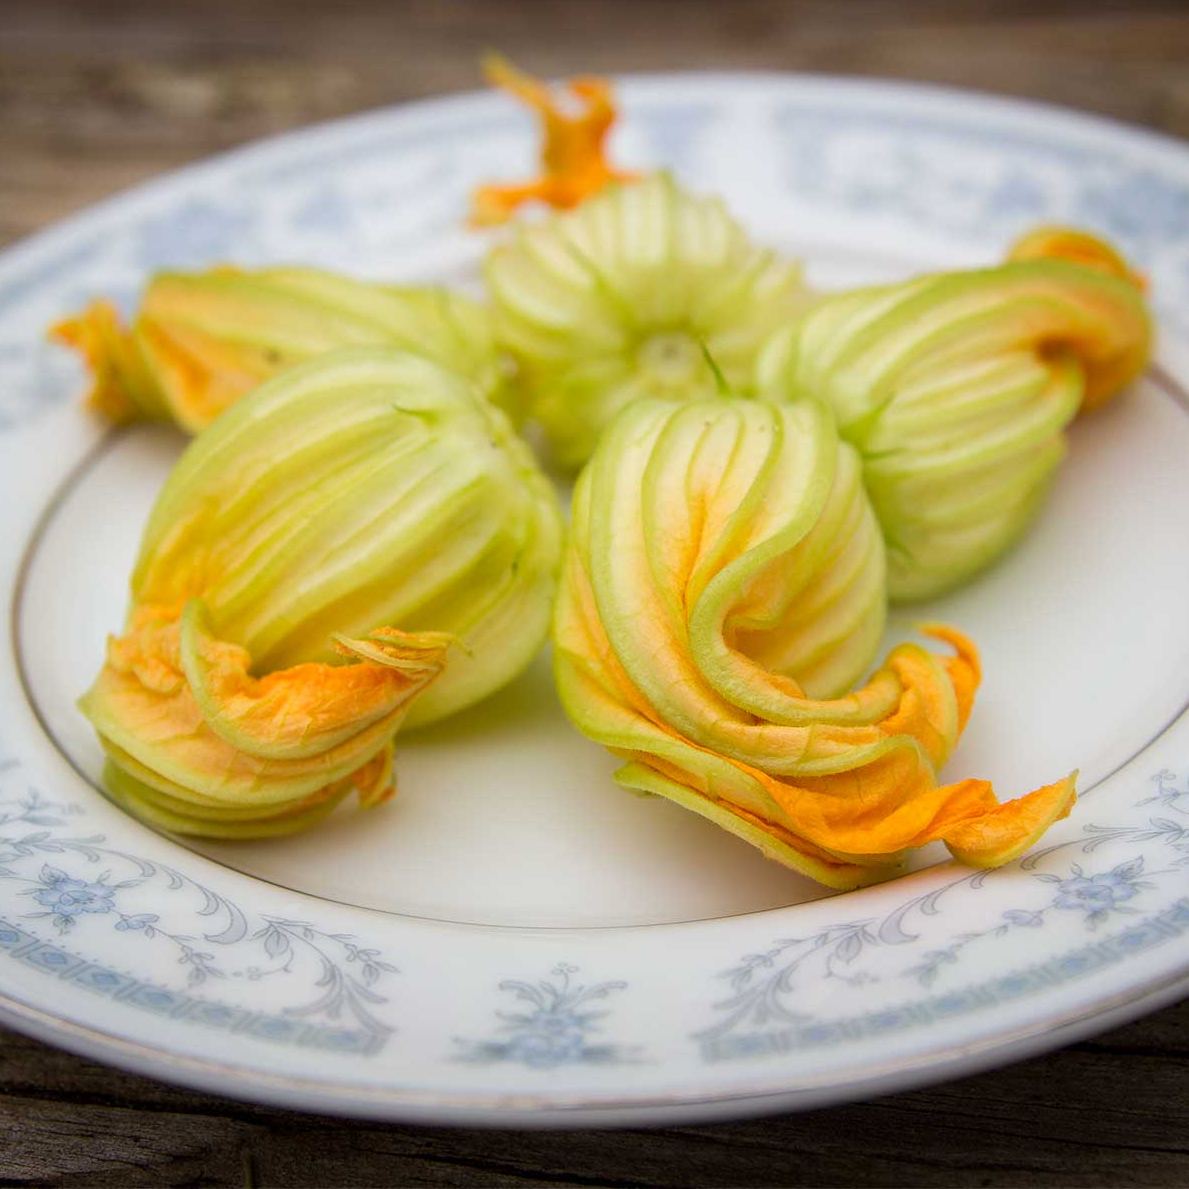 Photo of plate full of sqaush blossoms